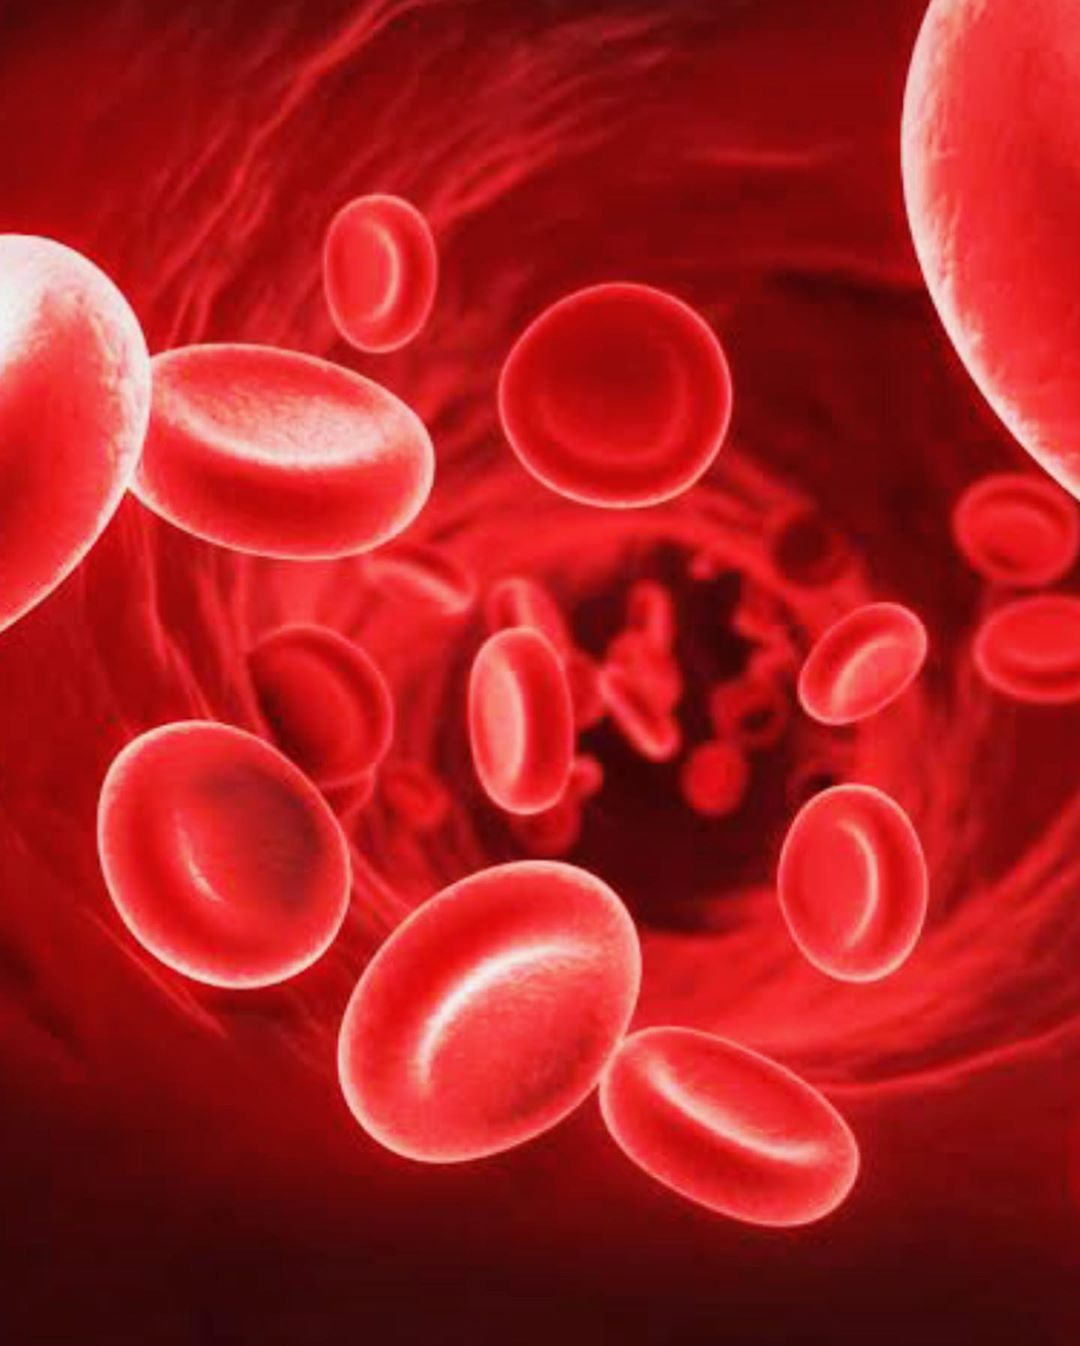 Increase Hemoglobin Count